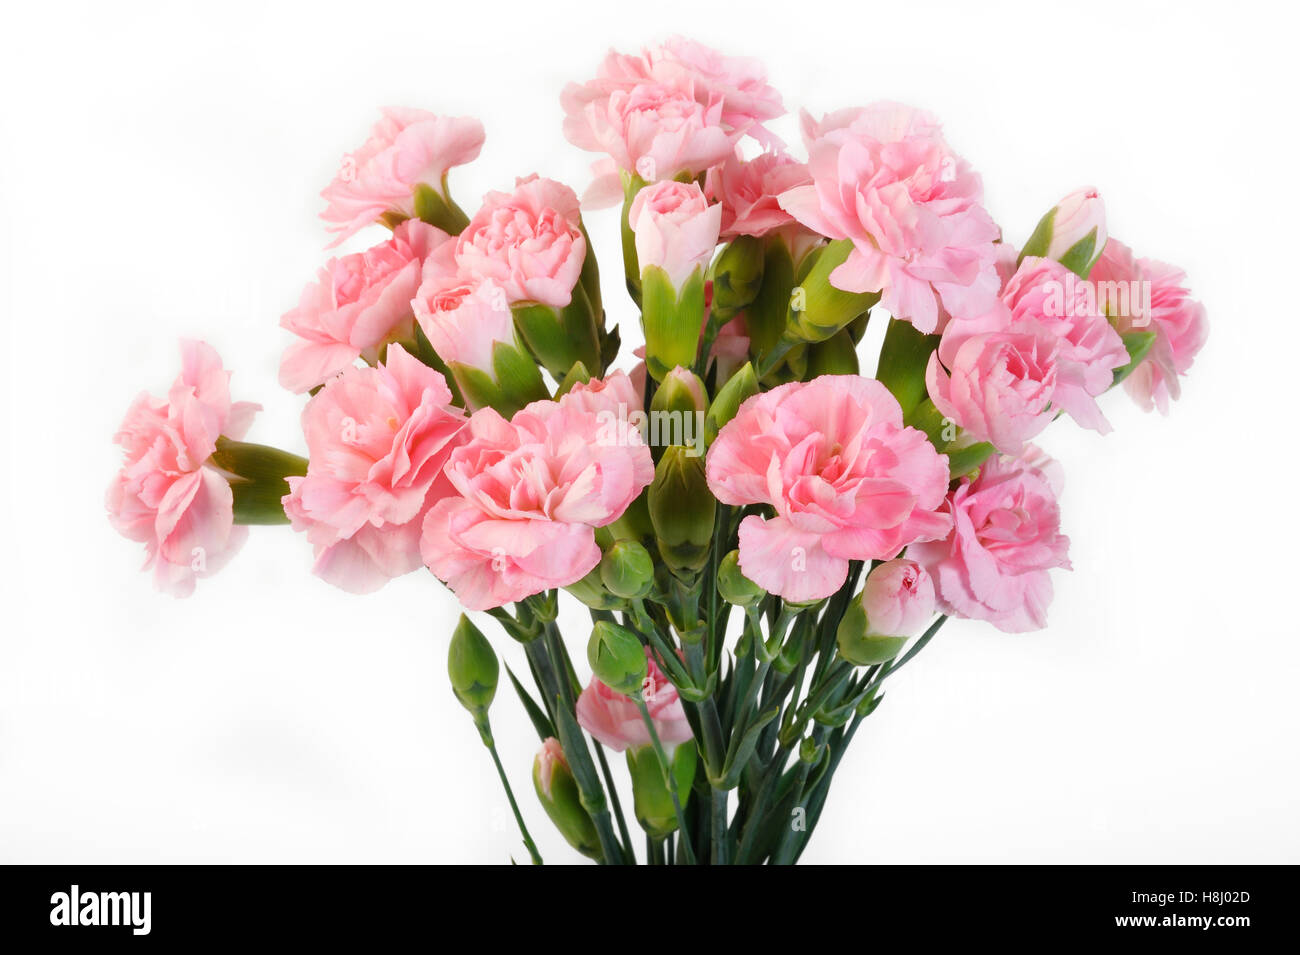 pink carnation flowers on white background - Stock Image